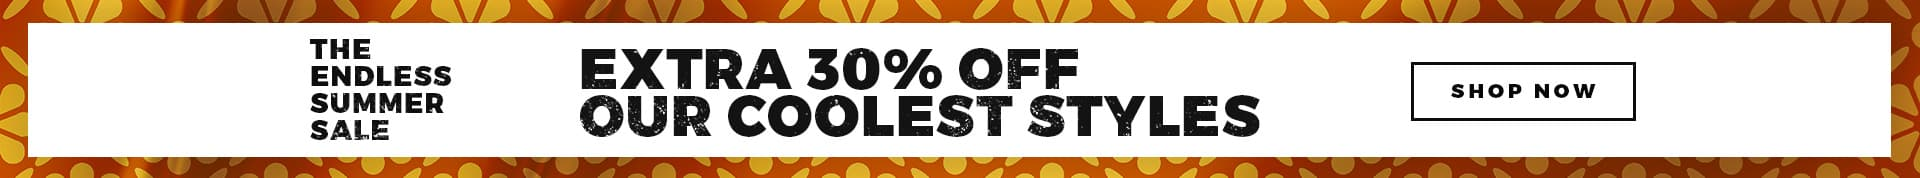 THE ENDLESS SUMMER SALE - EXTRA 30% OFF OUR COOLEST STYLES -SHOP NOW